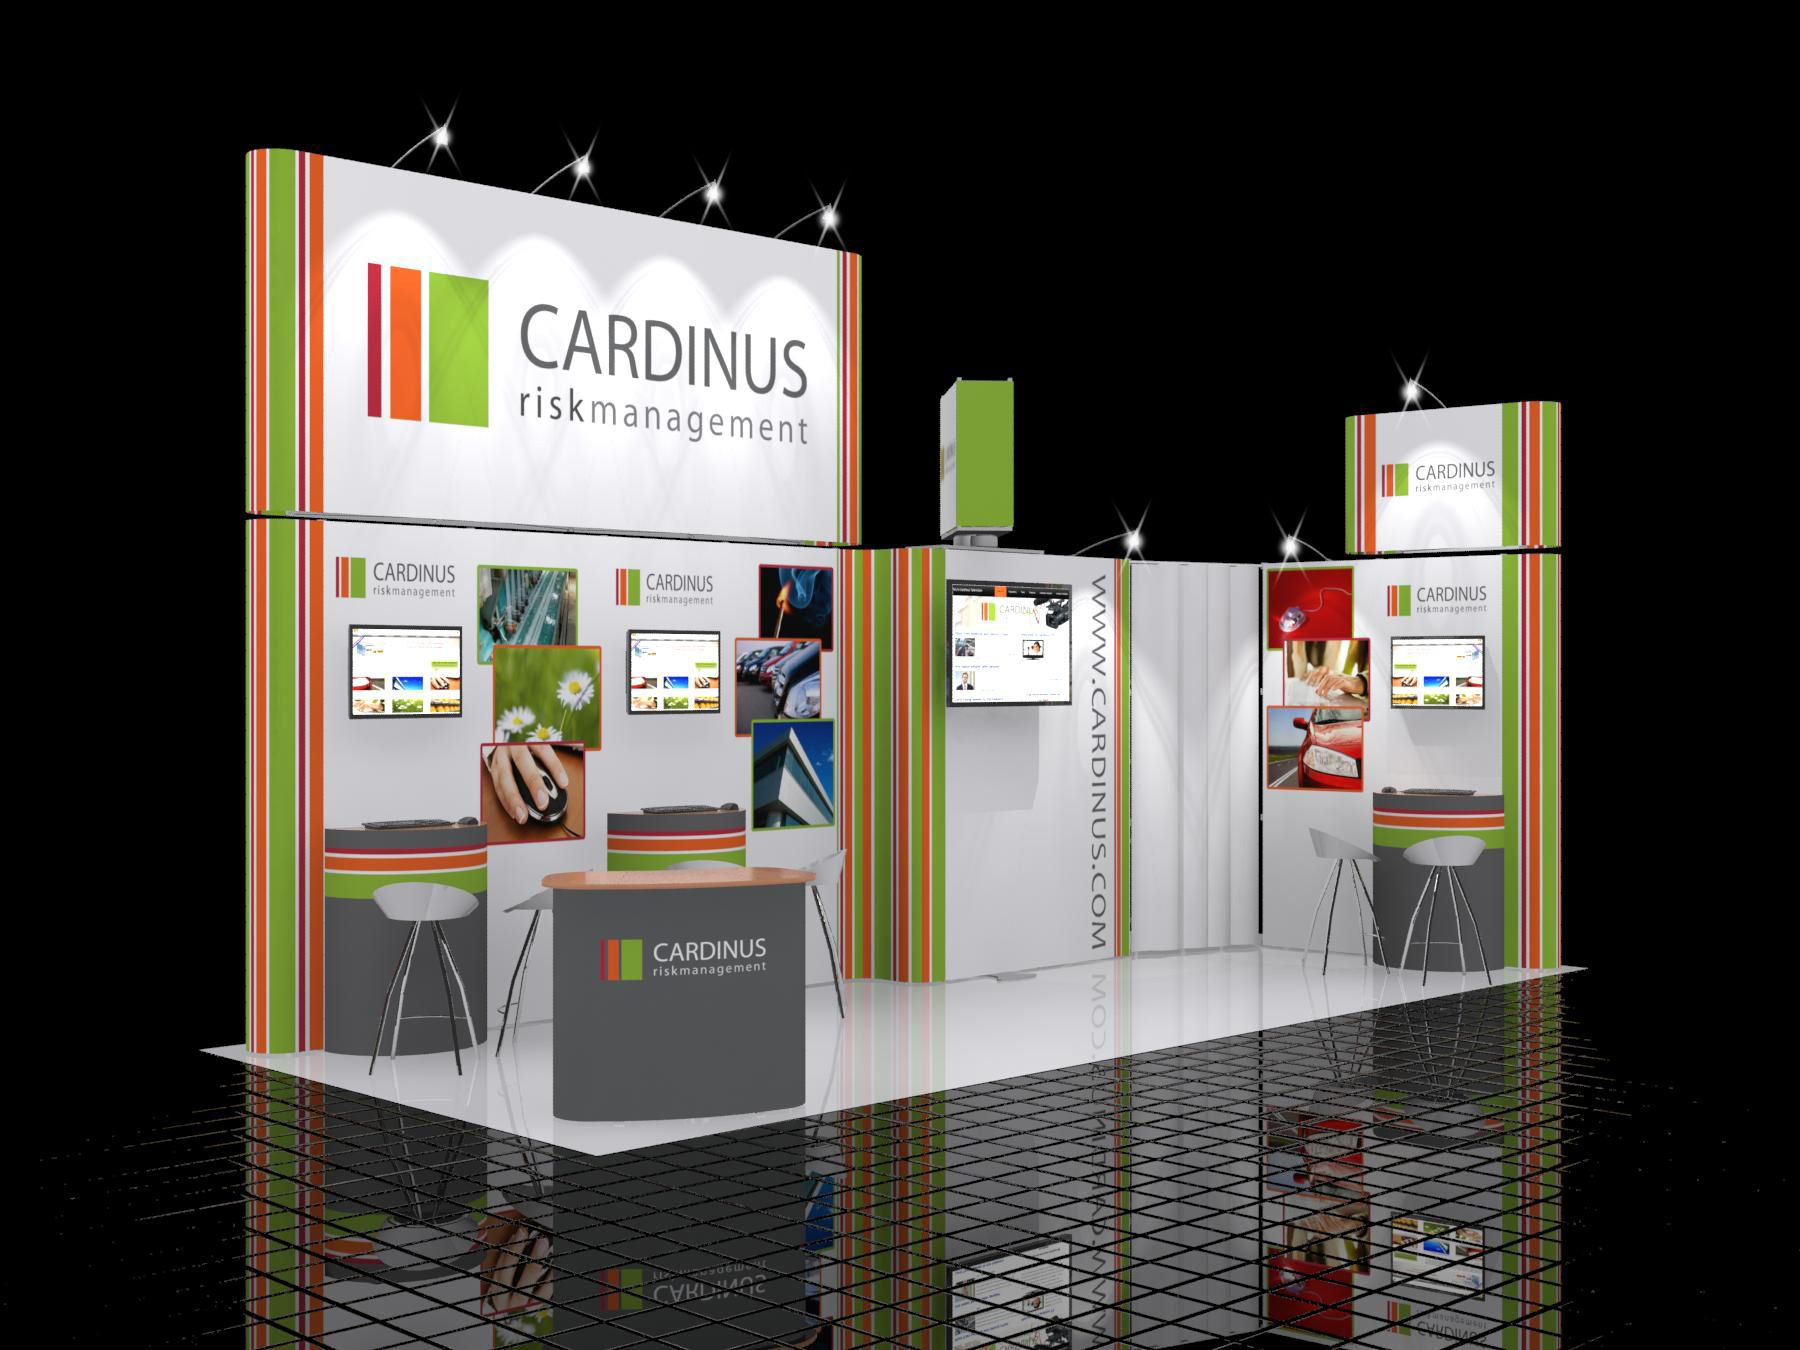 Sungard Exhibition Stand Ideas : Exhibition stands ideas imgkid the image kid